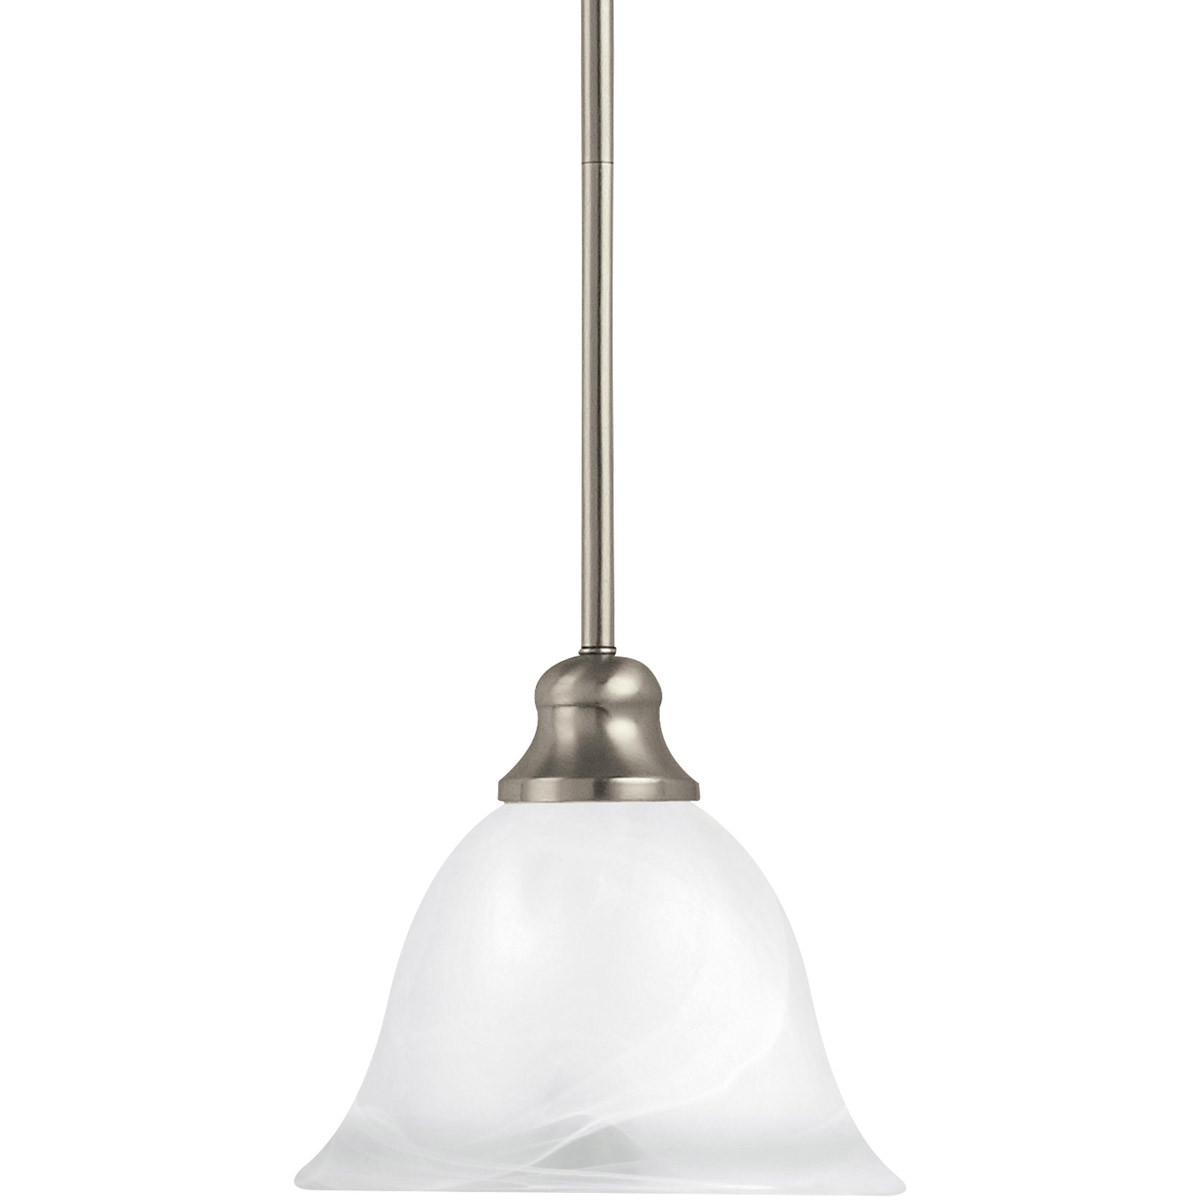 Sea Gull Lighting Windgate 1 Light Mini Pendant in Brushed Nickel 61940-962